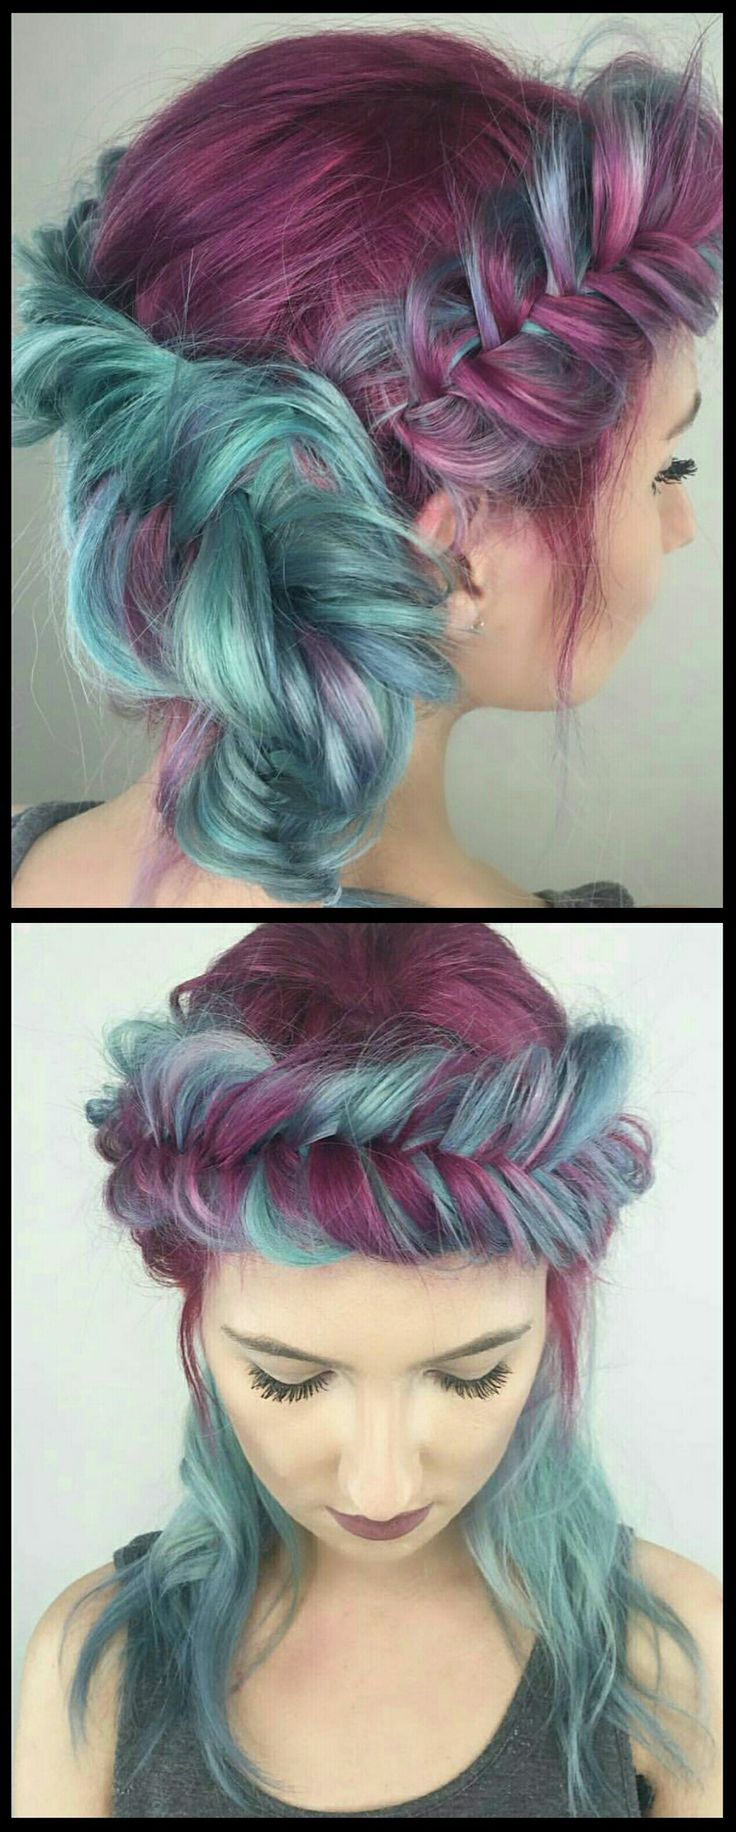 Purple blue fishtail braided dyed hair color @chitabesesu